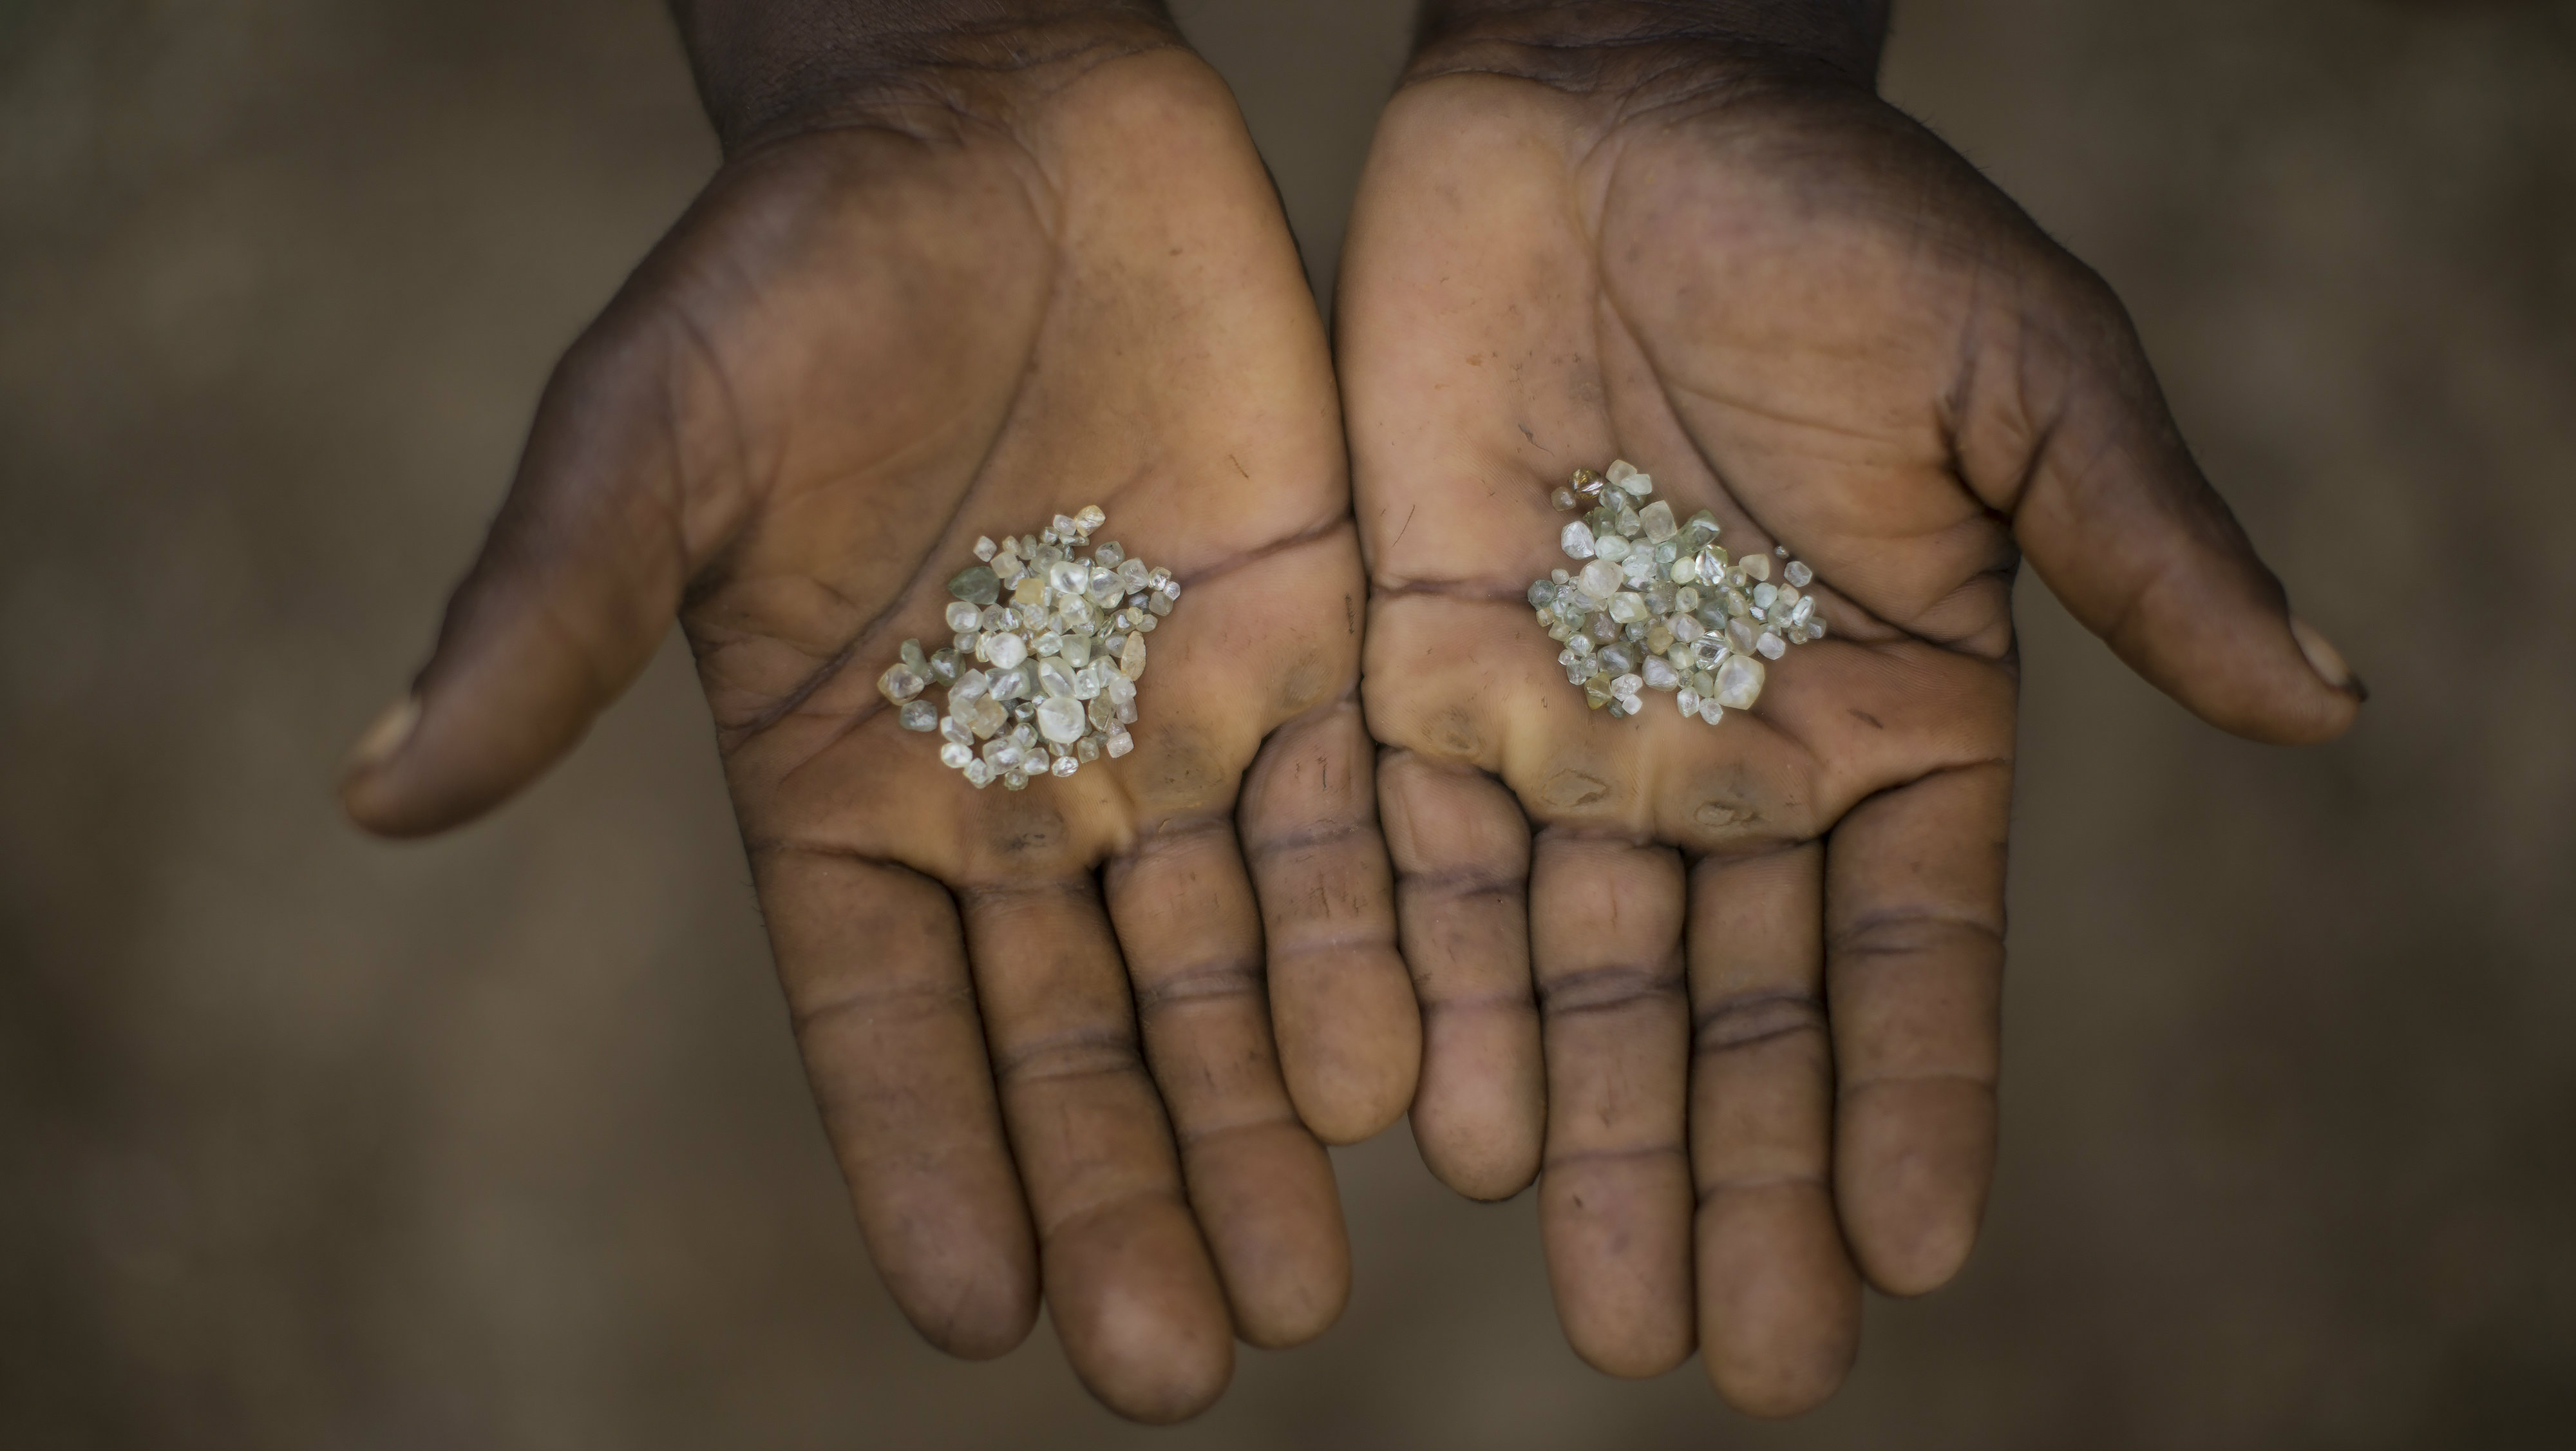 In this Nov. 19, 2015 photo, an artisanal miner shows the diamonds he and his group found in an abandoned mine in Areinha, Minas Gerais state, Brazil. The area has been explored for the precious stone since the time of slavery, and up to a couple of years ago, multinational mining companies extracted the stone without care for the land or the Jequitinhonha river that crosses the region.